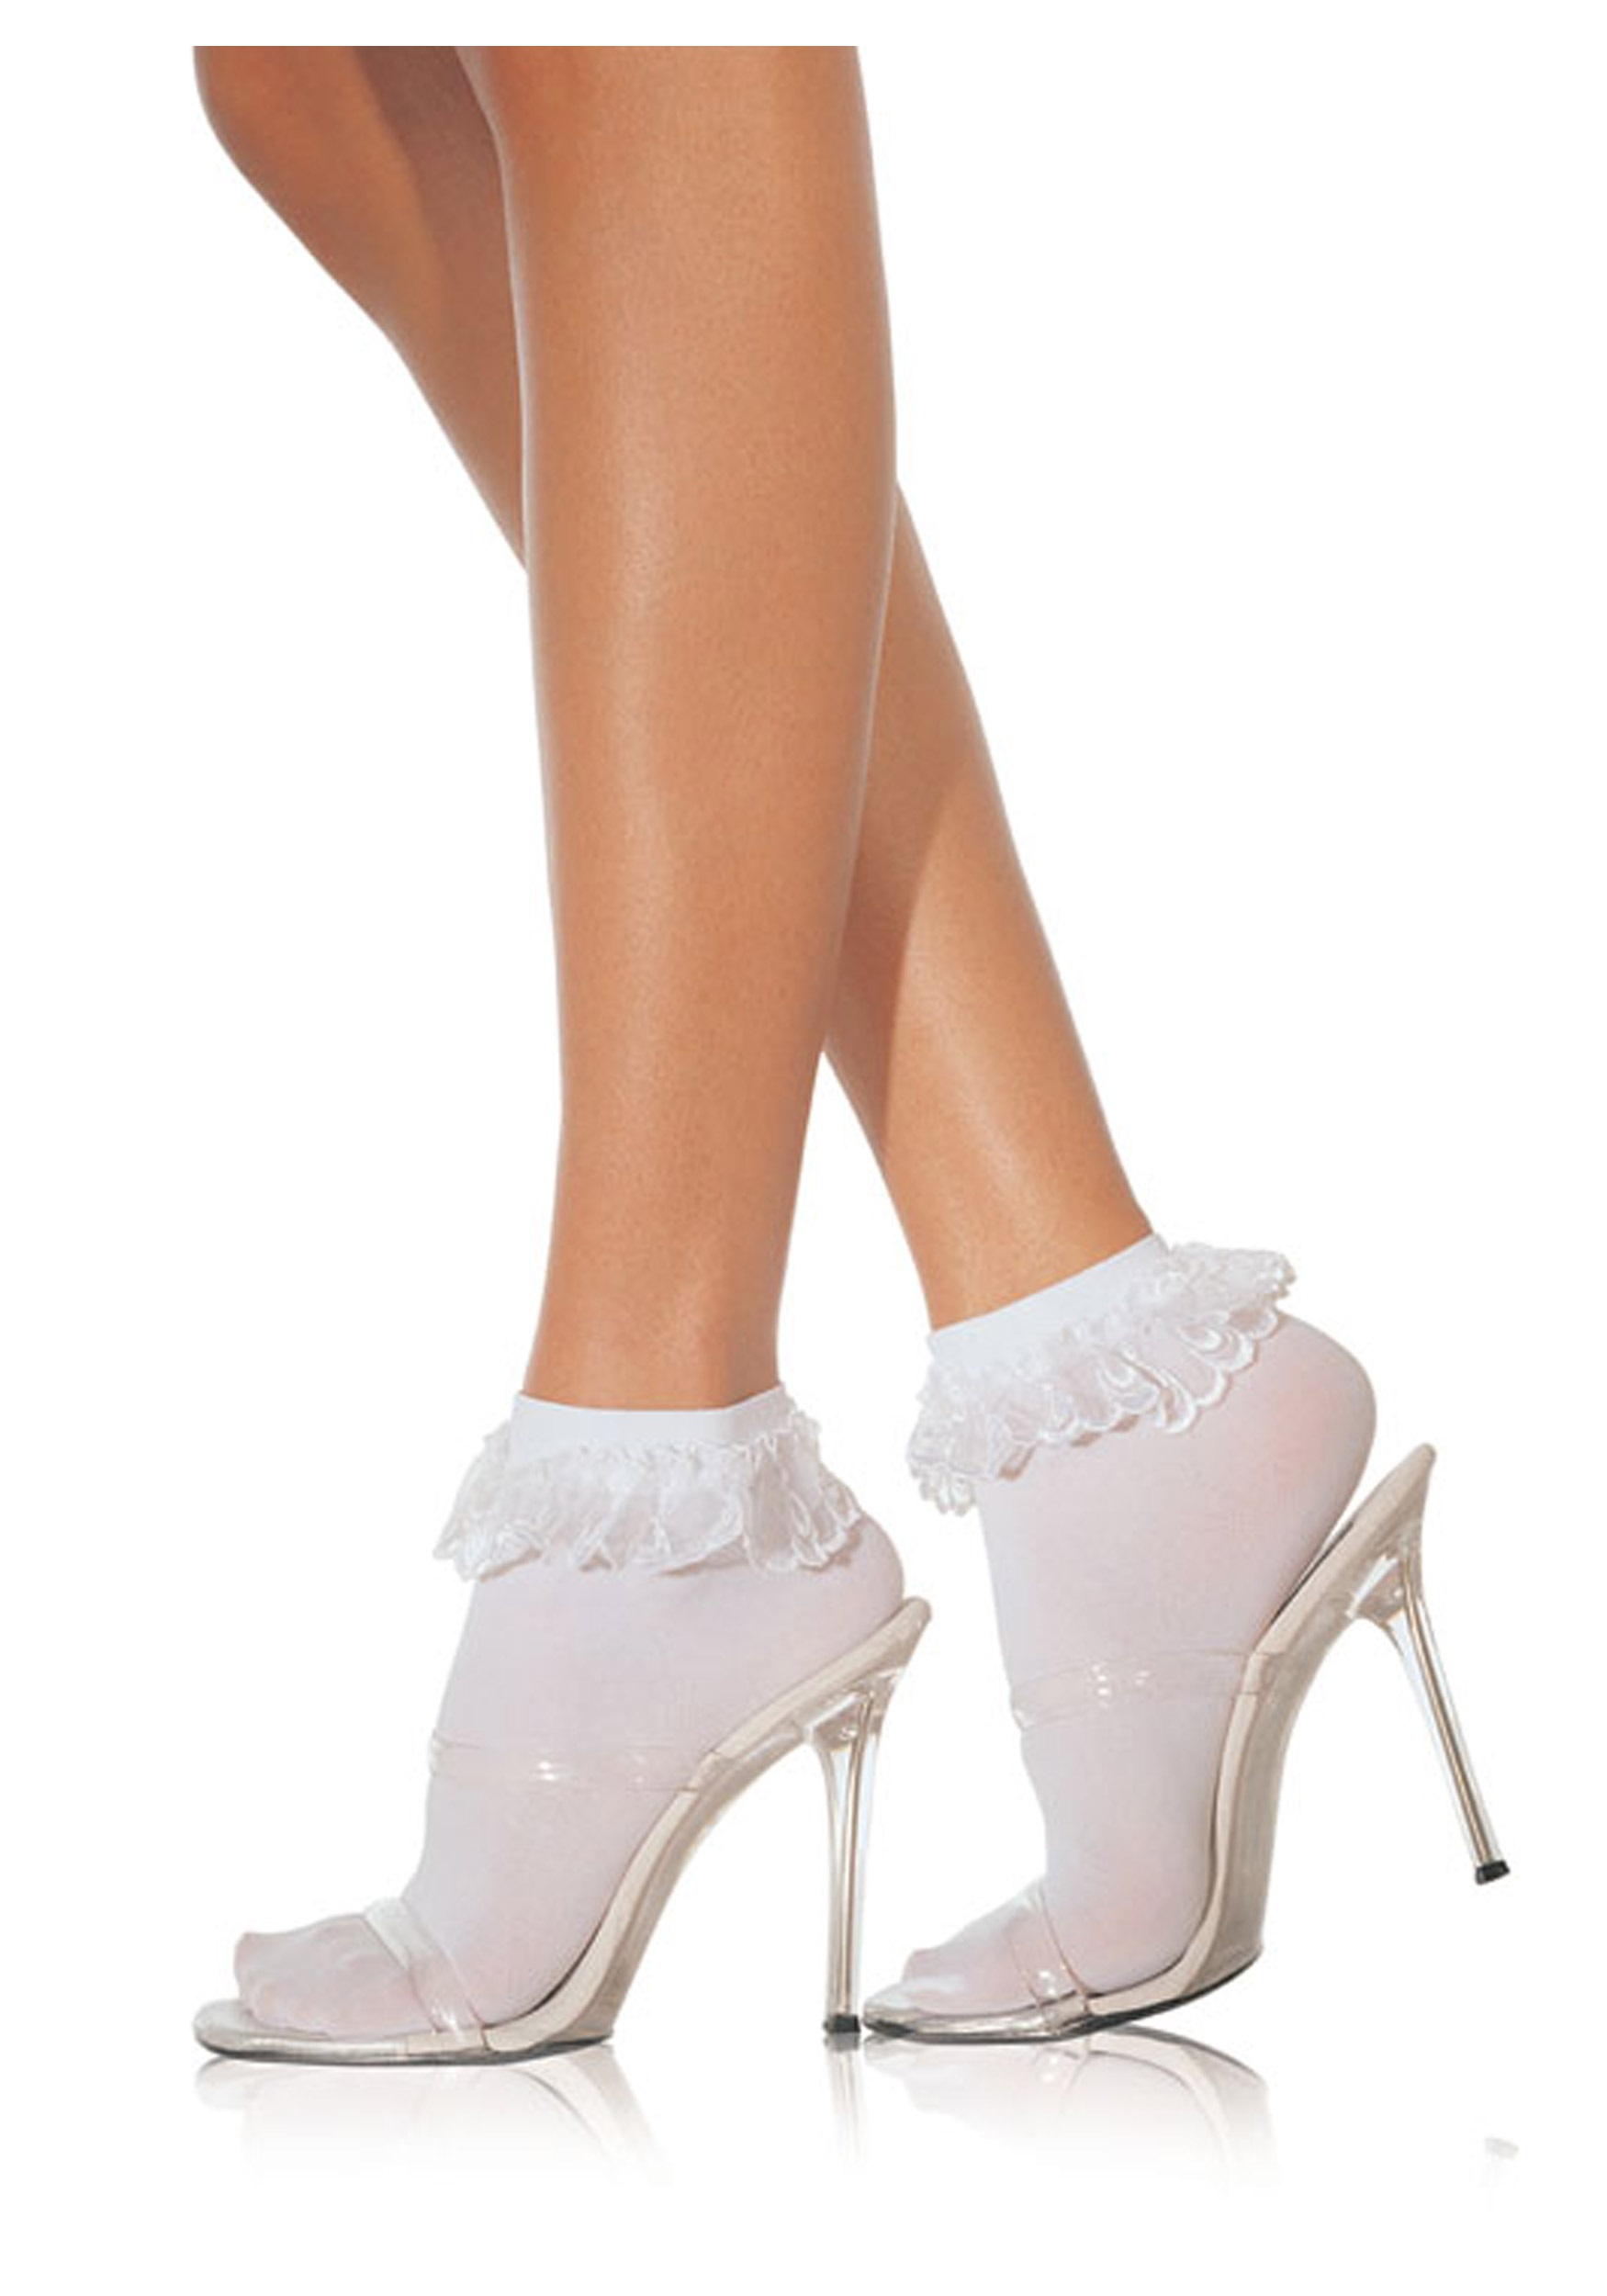 nylon anklet white adult ruffle woman socks